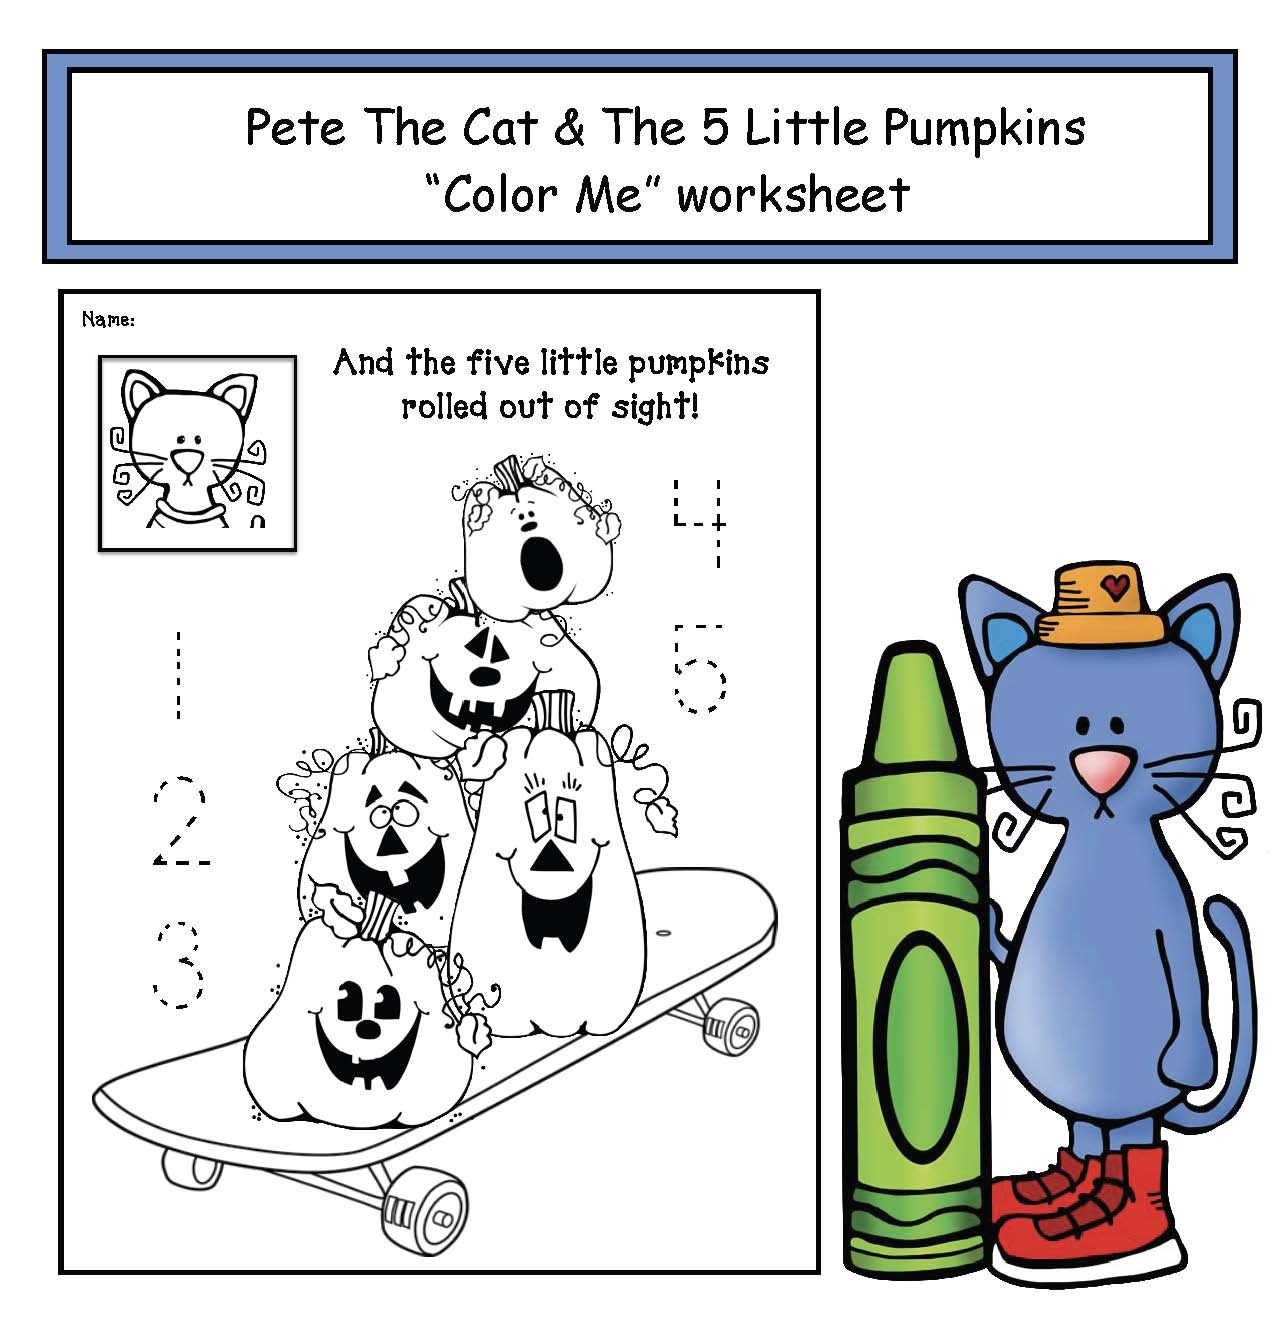 Pete the cat and the 5 little pumpkins free coloring pages